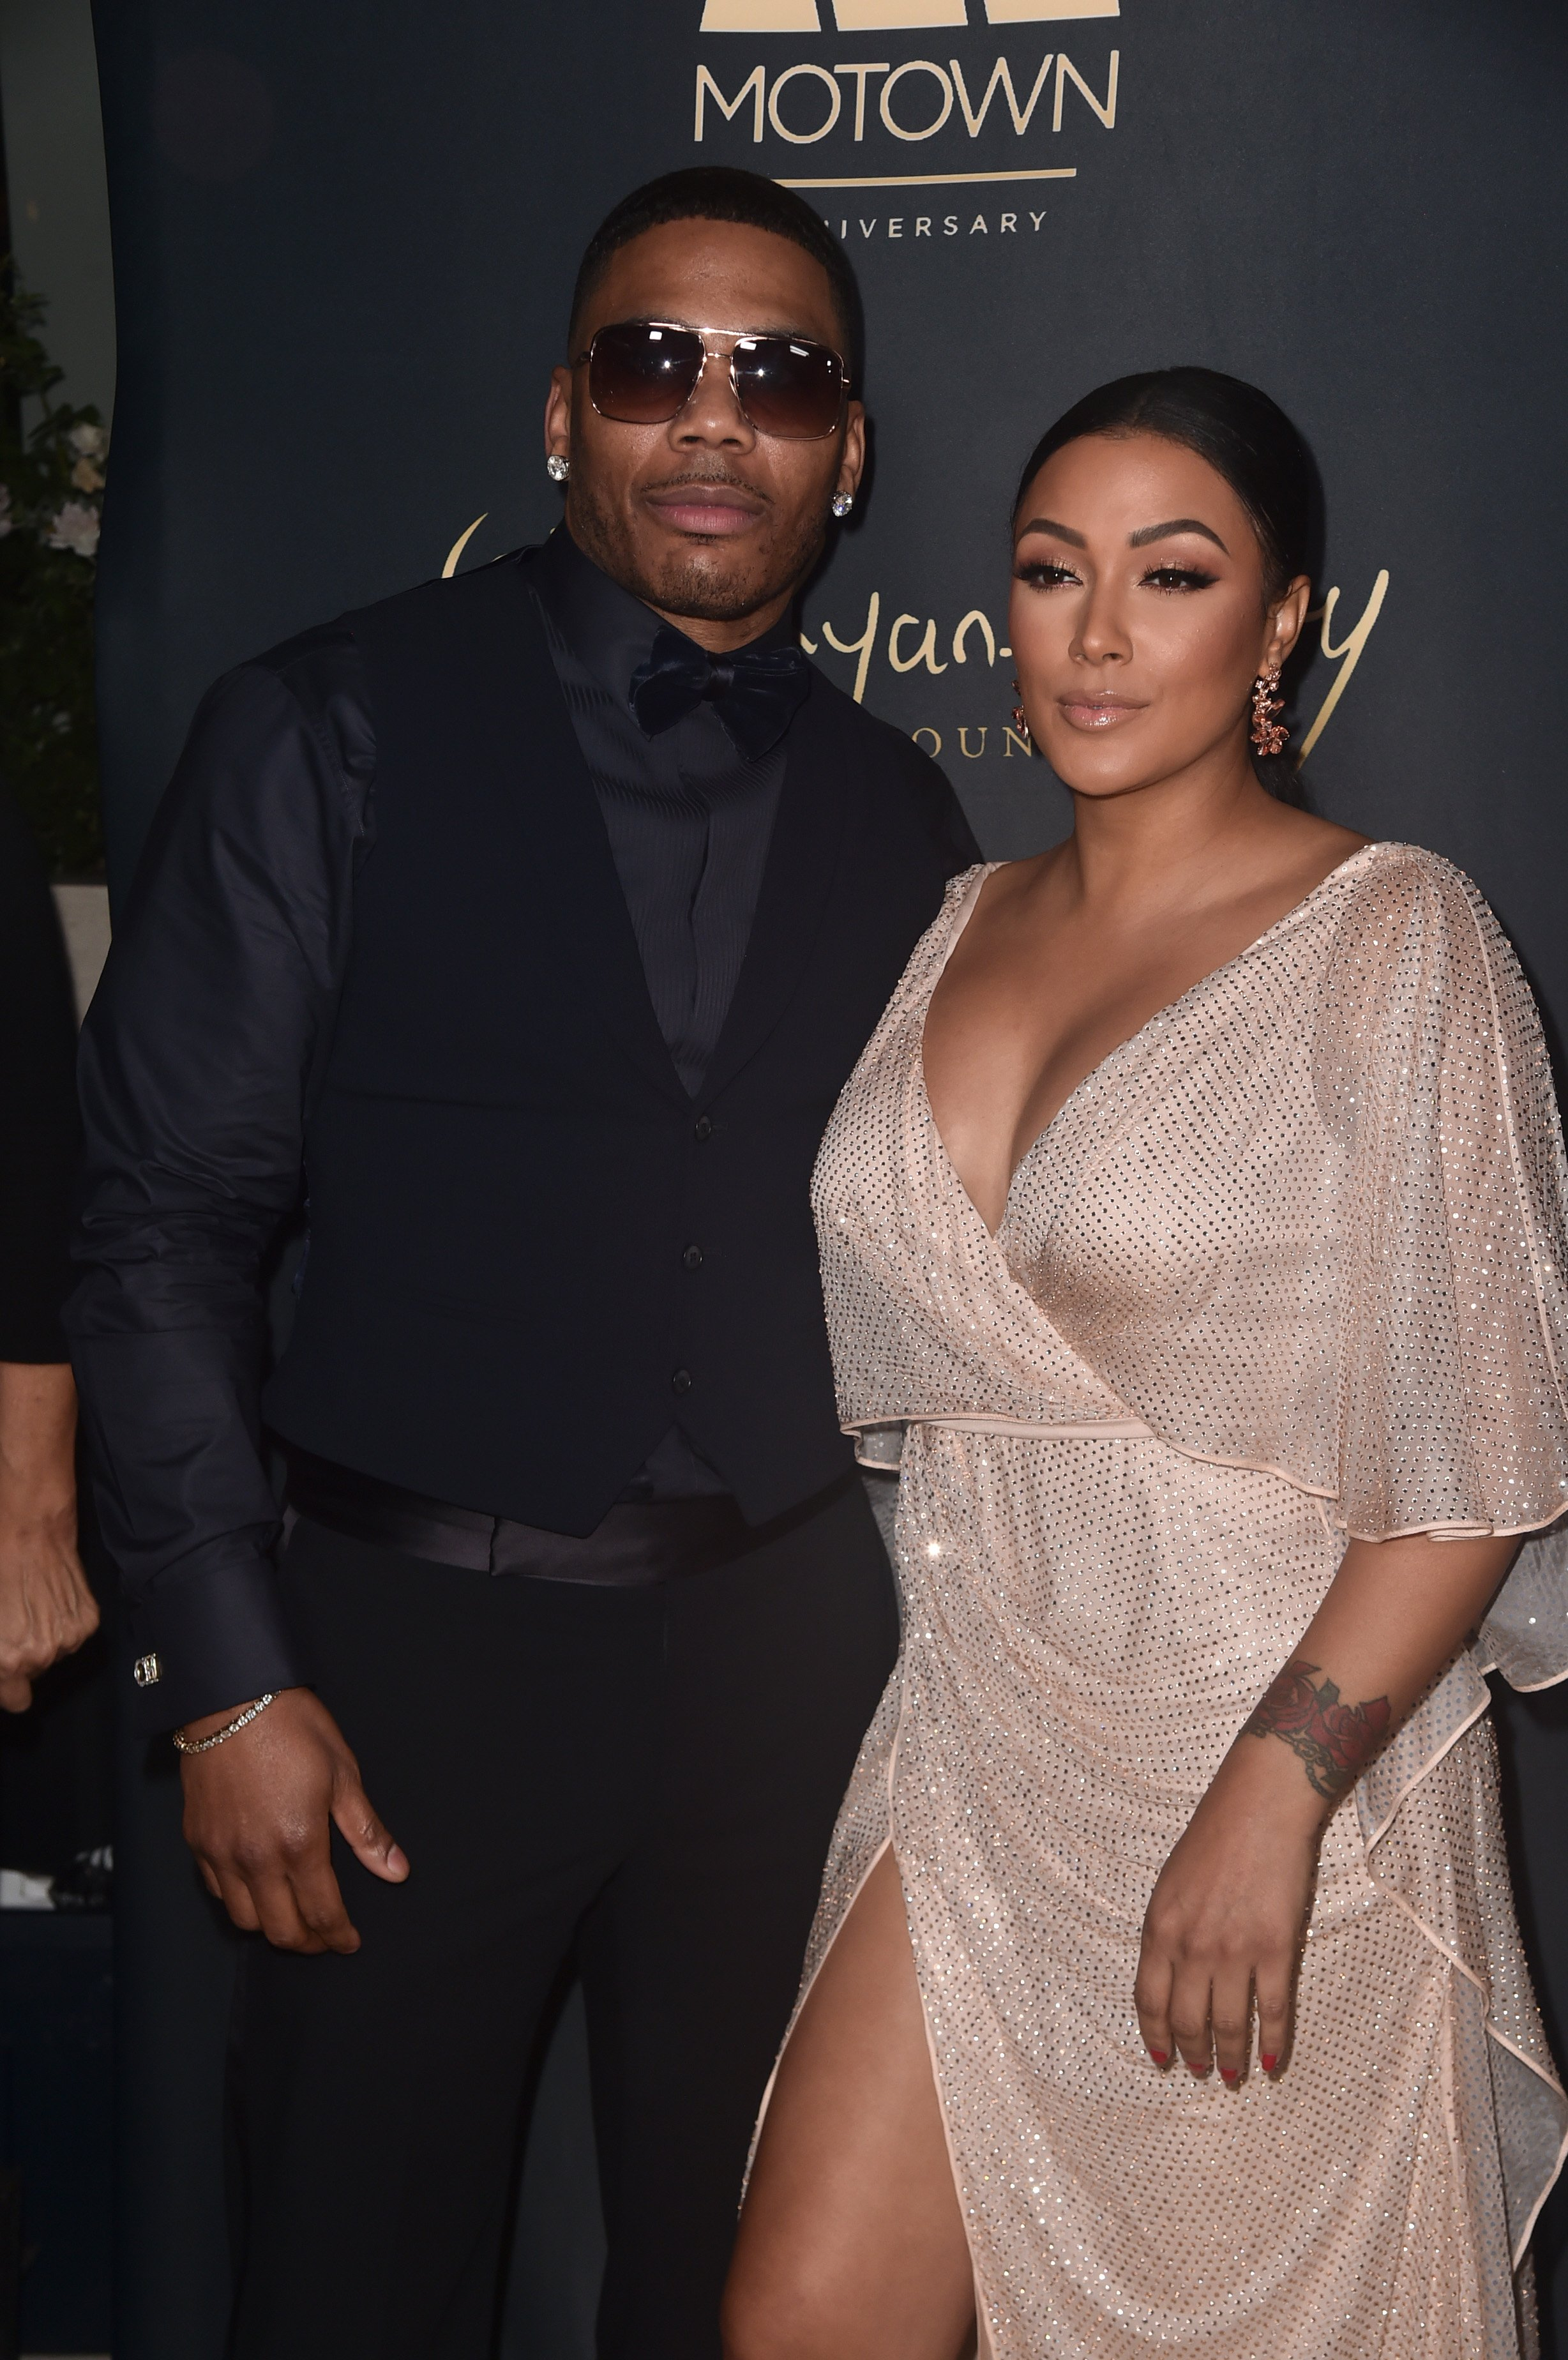 Nelly and Shantel Jackson at Waldorf Astoria Beverly Hills as the Ryan Gordy Foundation celebrates 60 Years of Motown on November 11, 2019 in California.| Source: Getty Images